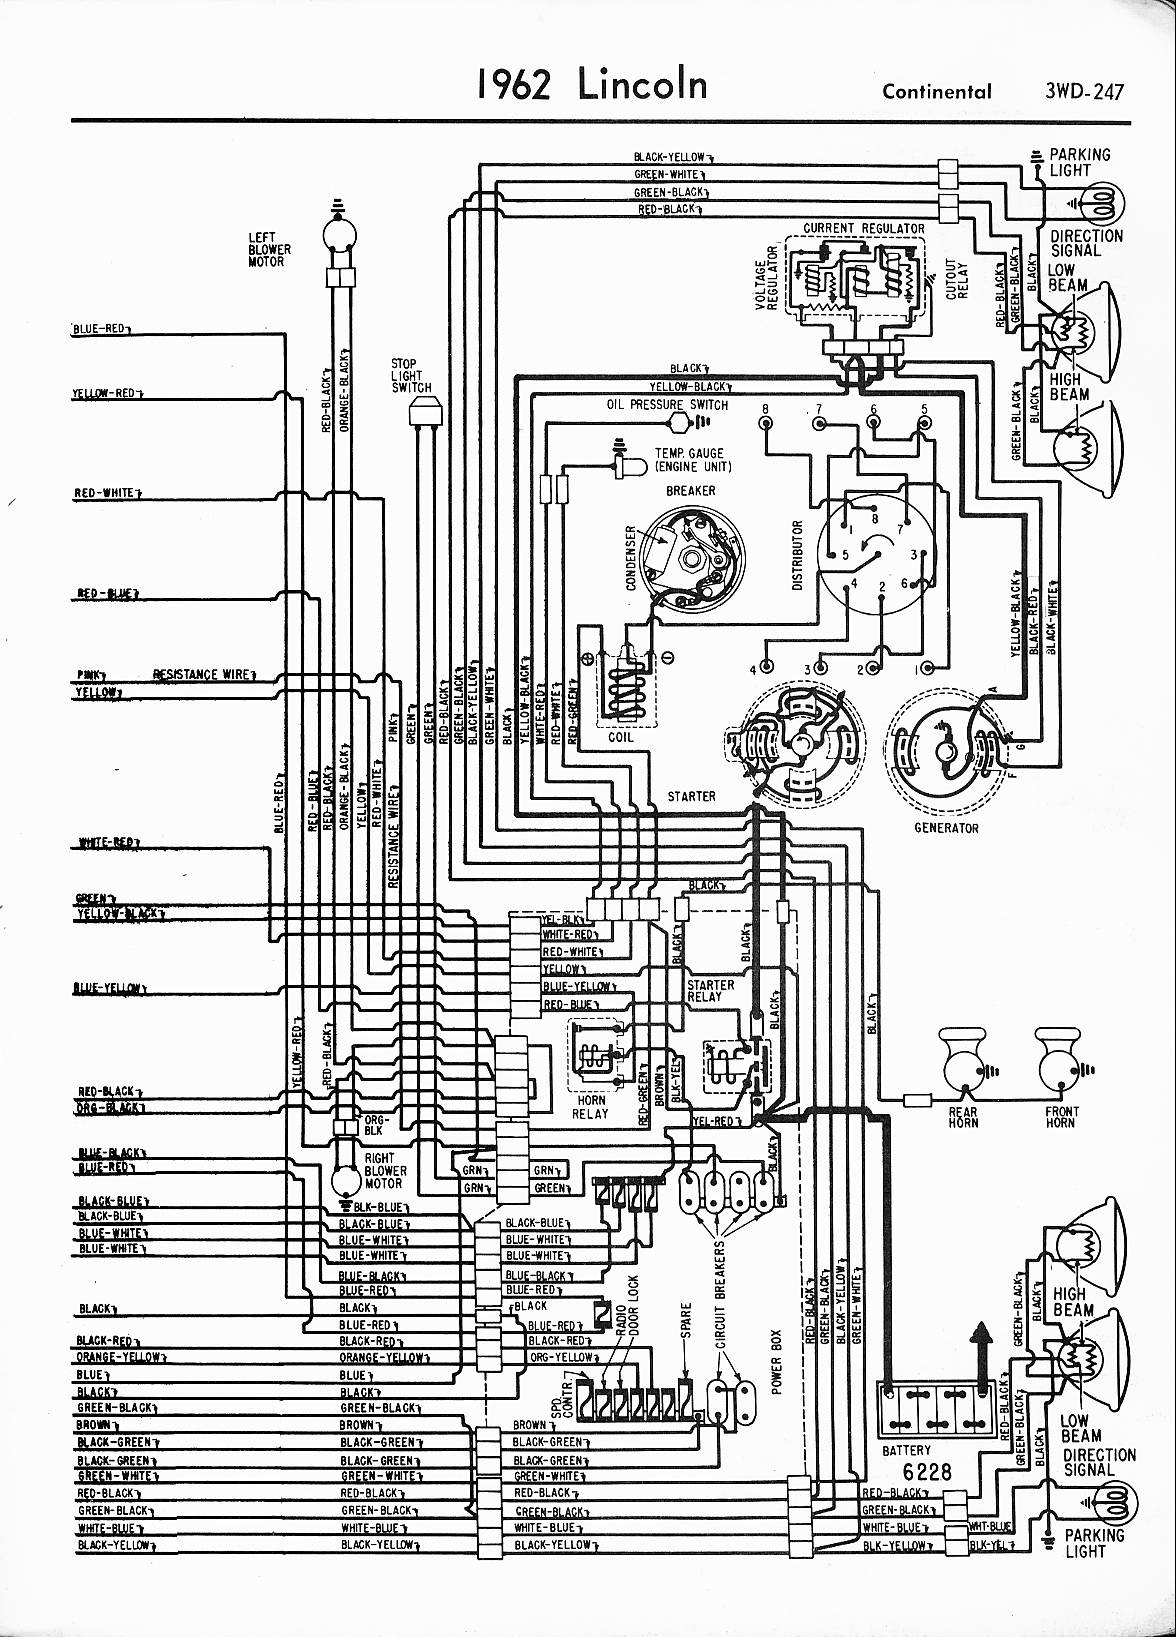 Lincoln Wiring Diagrams 1957 1965 Male Diagram 1962 Left Half